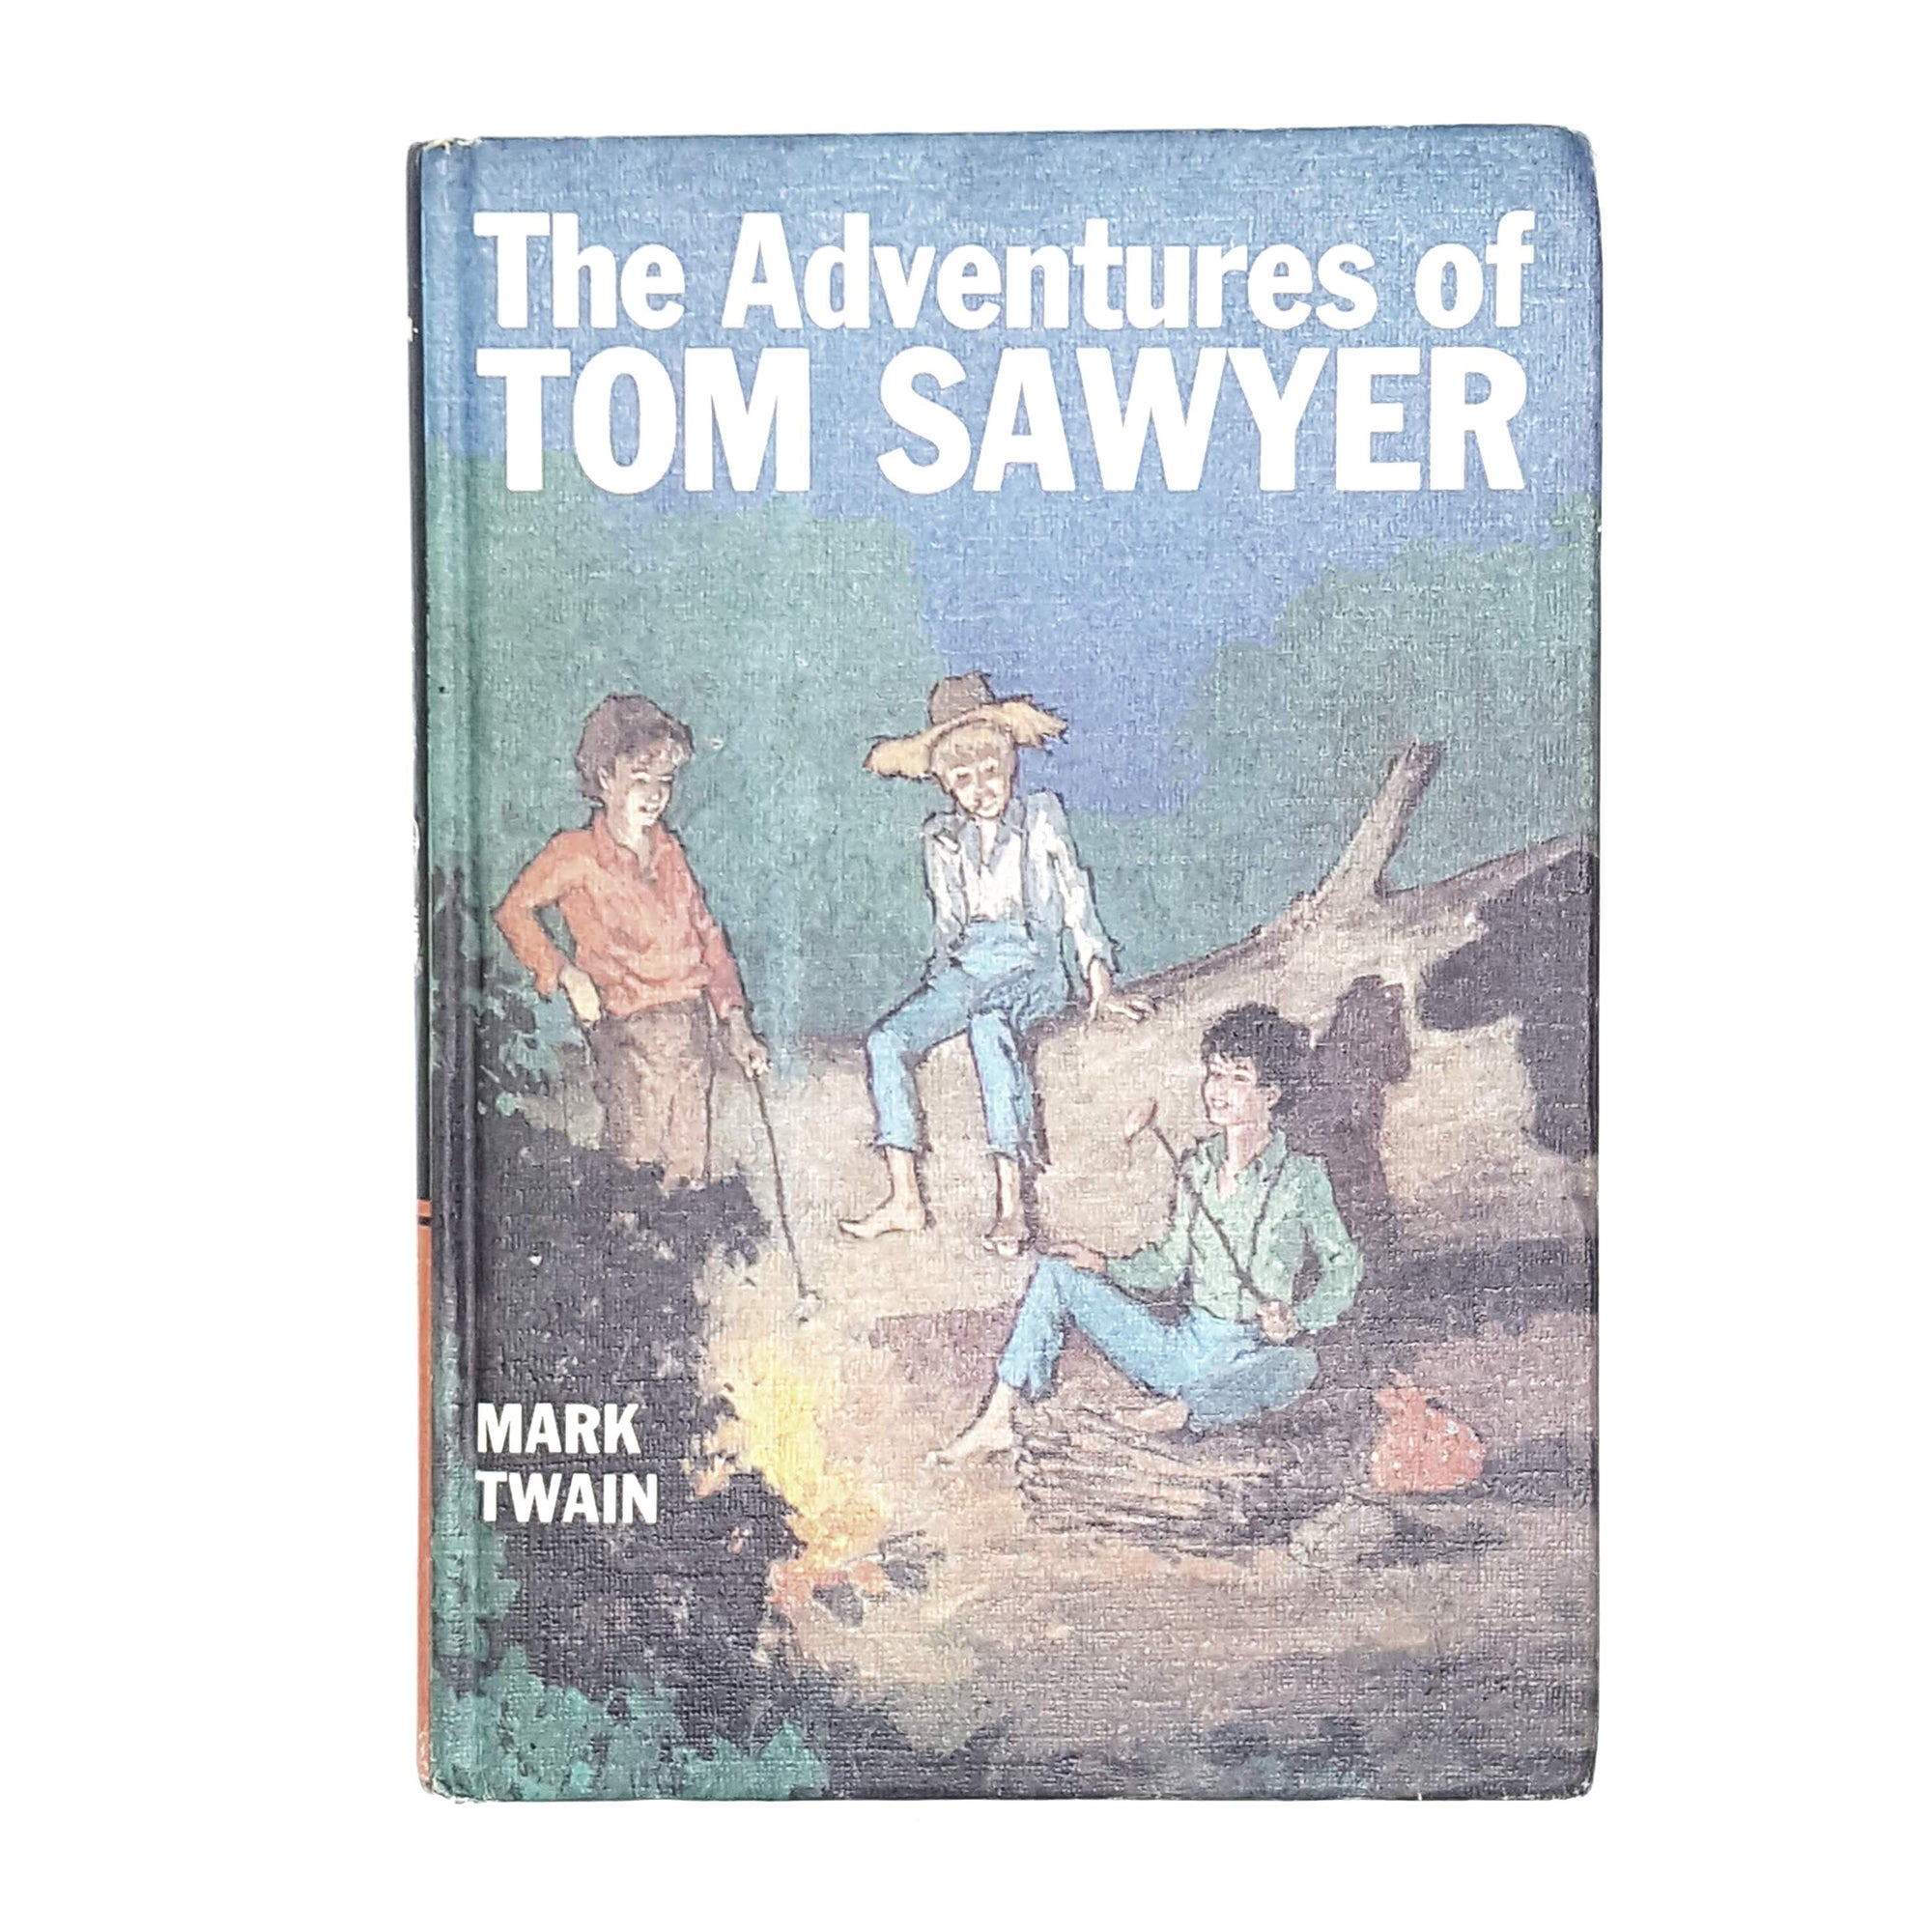 Mark Twain's The Adventures of Tom Sawyer 1972